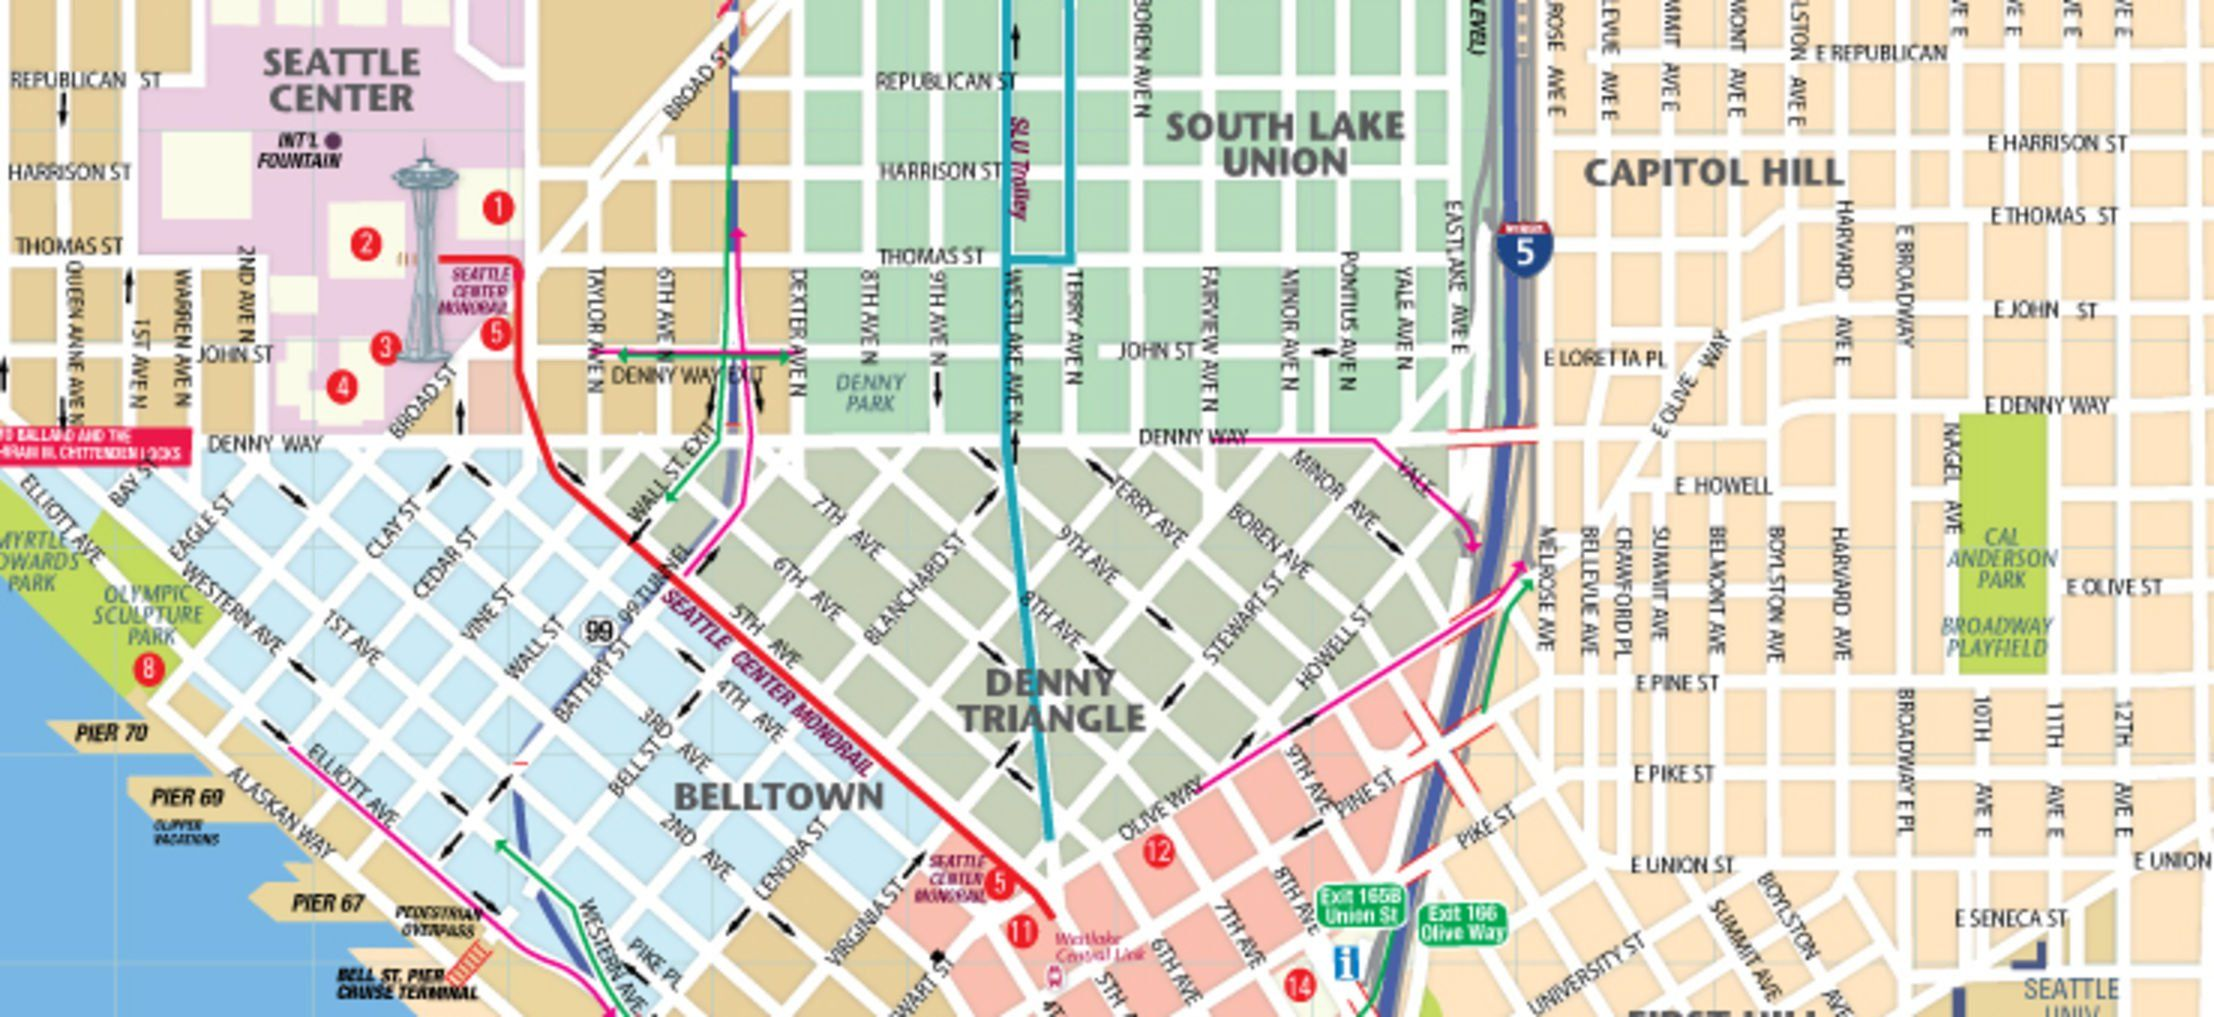 maps map of downtown nashville  blog with collection of maps all  - map of downtown nashville ecaefbaa